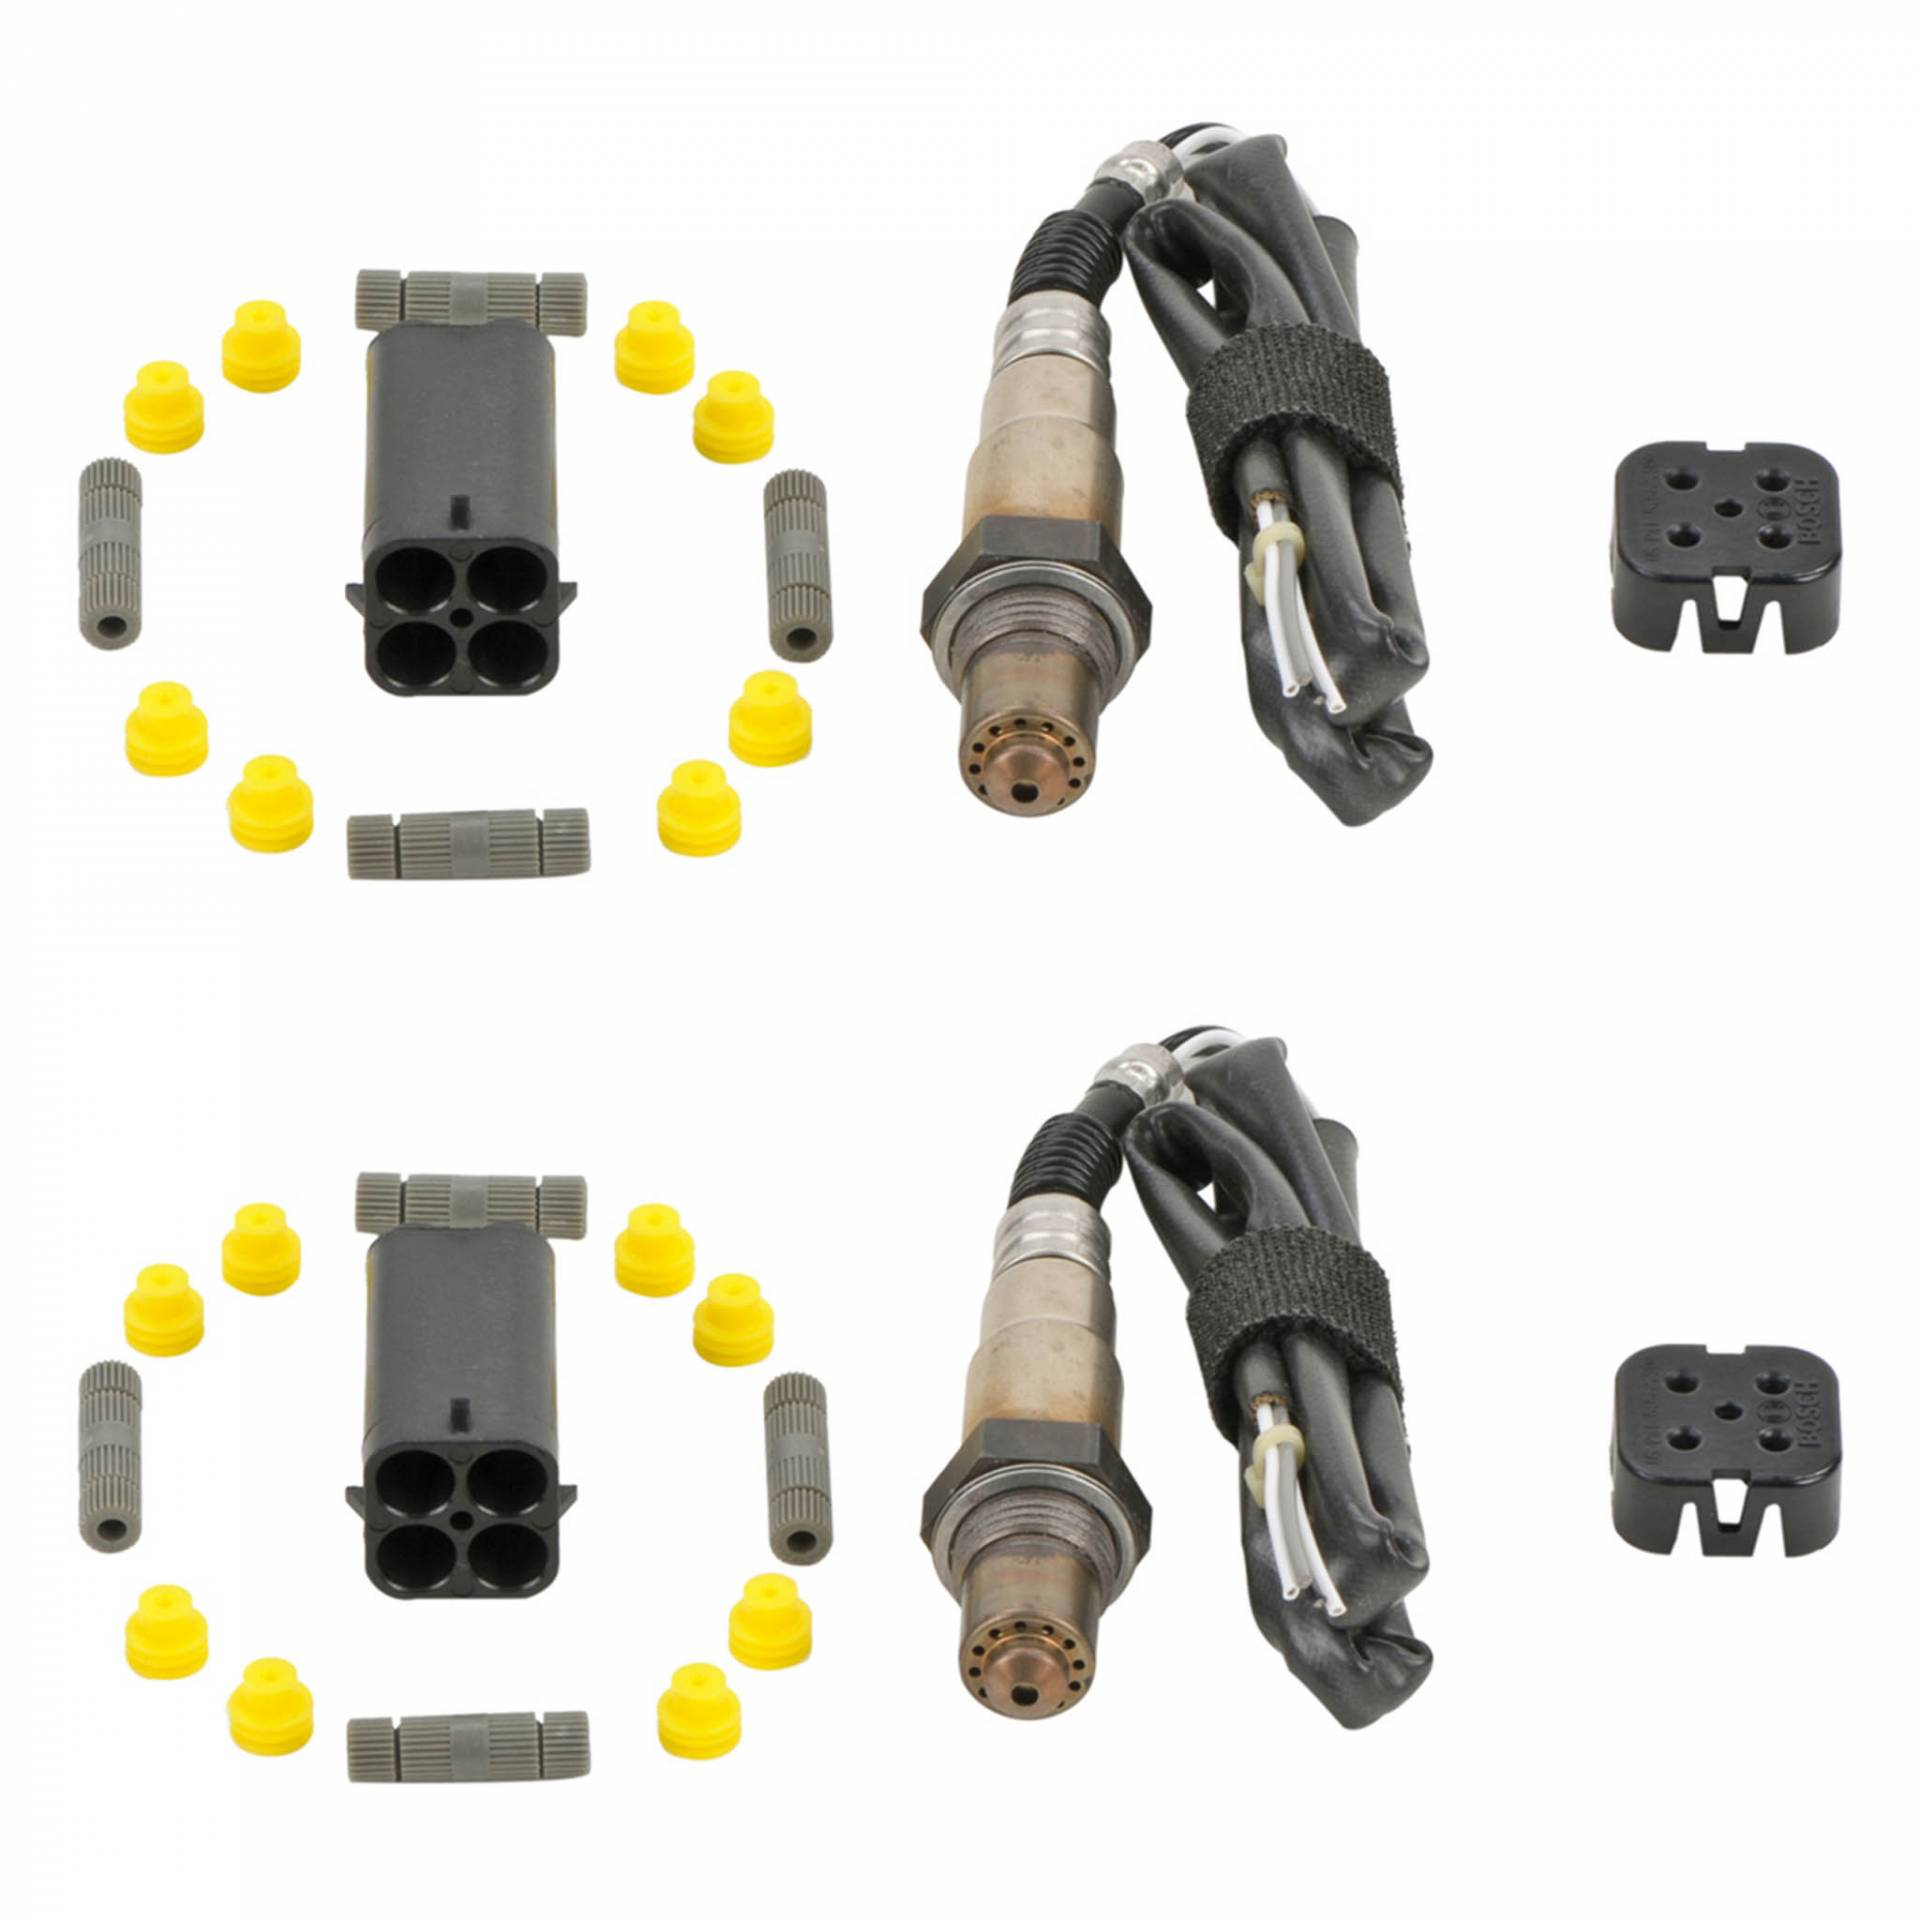 New 2003 Mercedes Benz E55 AMG Oxygen Sensor Kit Pair 5.5L Eng. - V8 Eng. - Upstream and Downstream Pair from BuyAutoParts